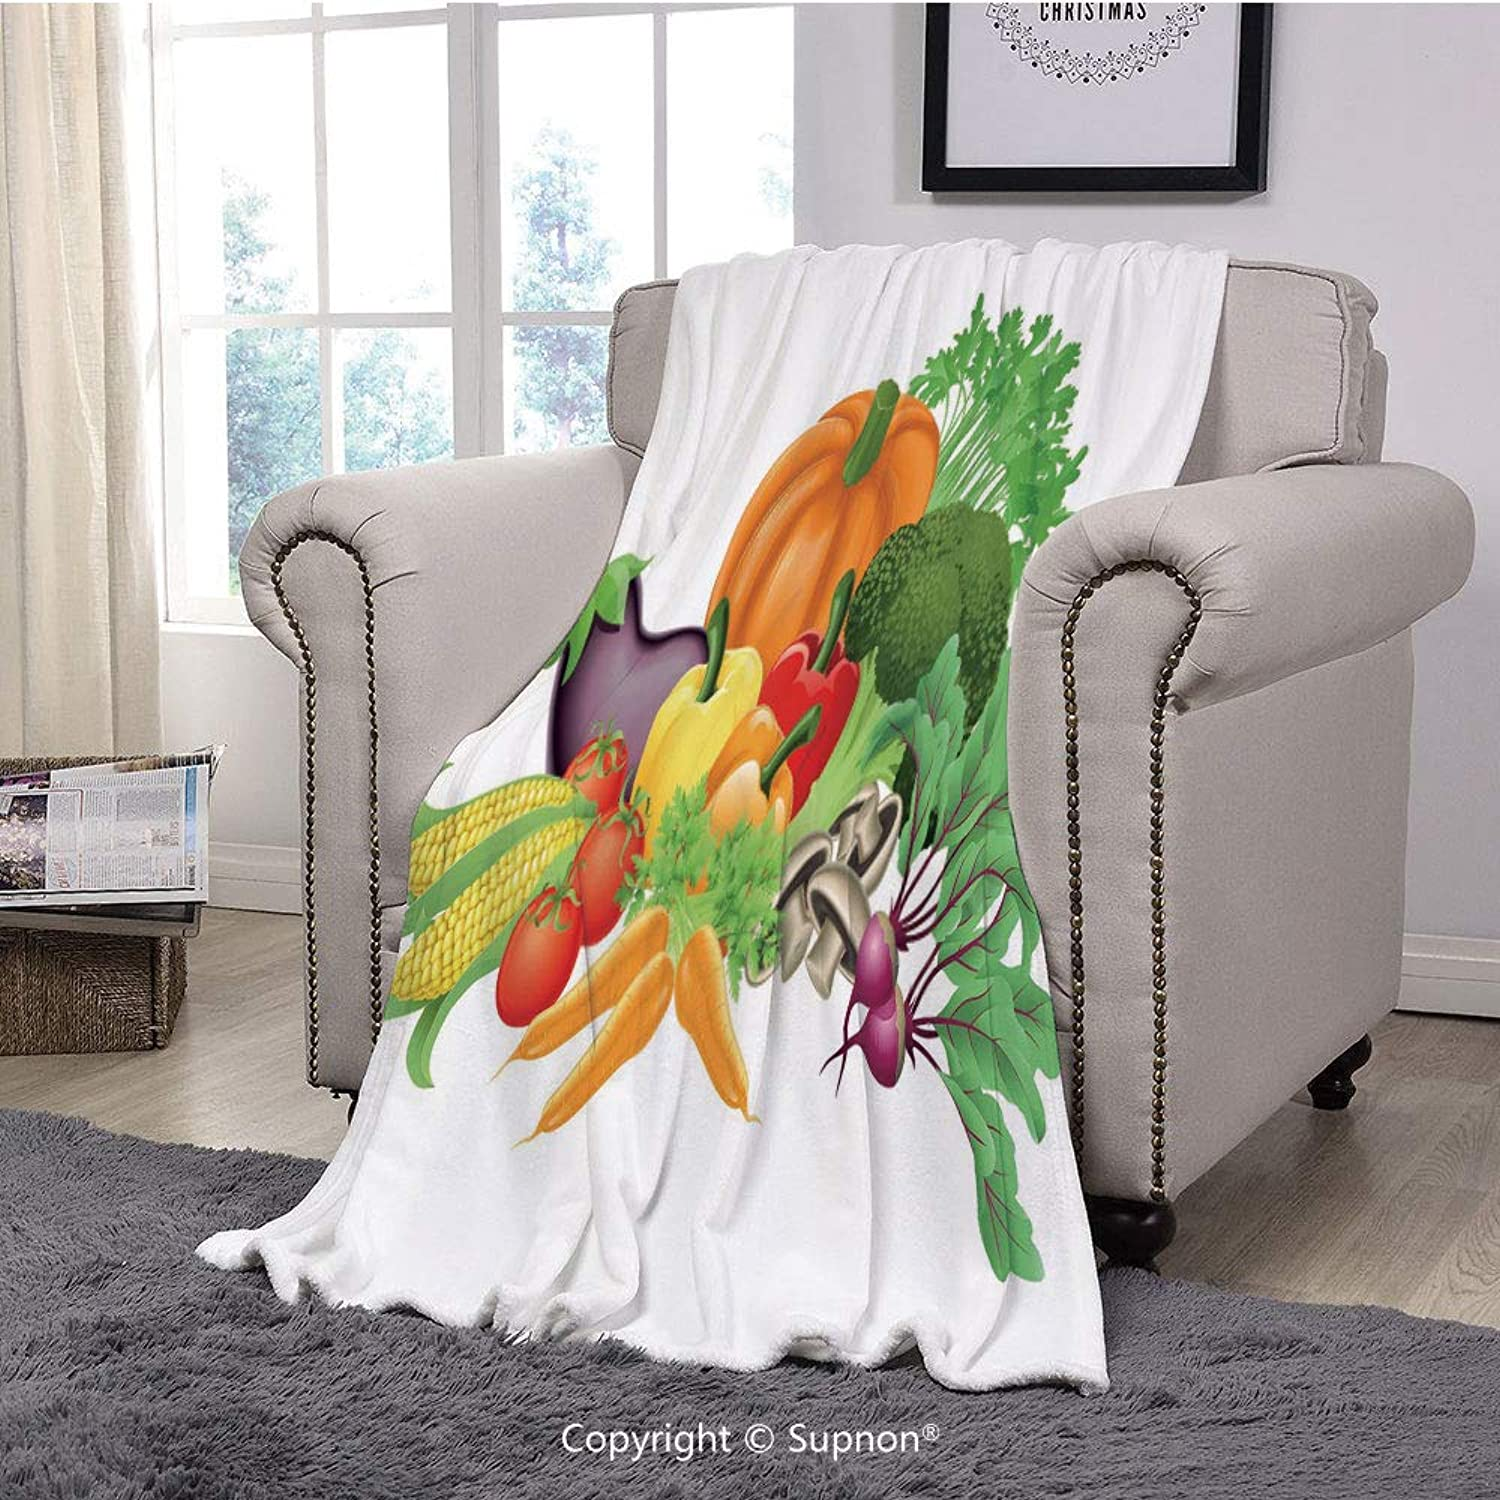 Printing Blanket Coral Plush Super Soft Decorative Throw Blanket,Harvest,Cartoon Drawing Style Fall Harvest Yield Fresh and Tasty Vegetables Bell Peppers Decorative,Multicolor(59  x 59 )